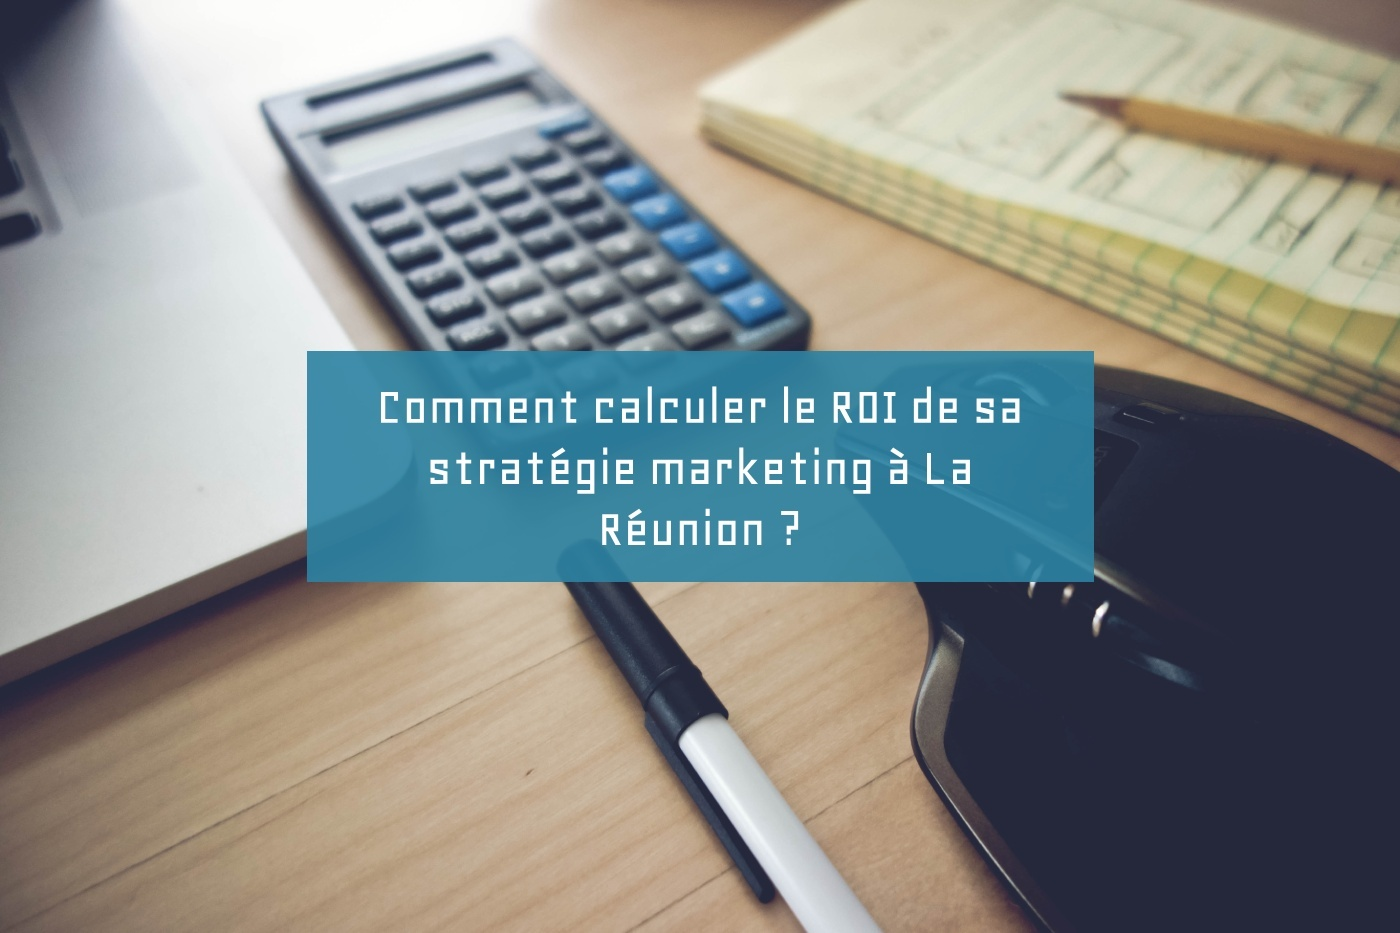 Comment calculer le ROI de sa stratégie marketing à La Réunion ?